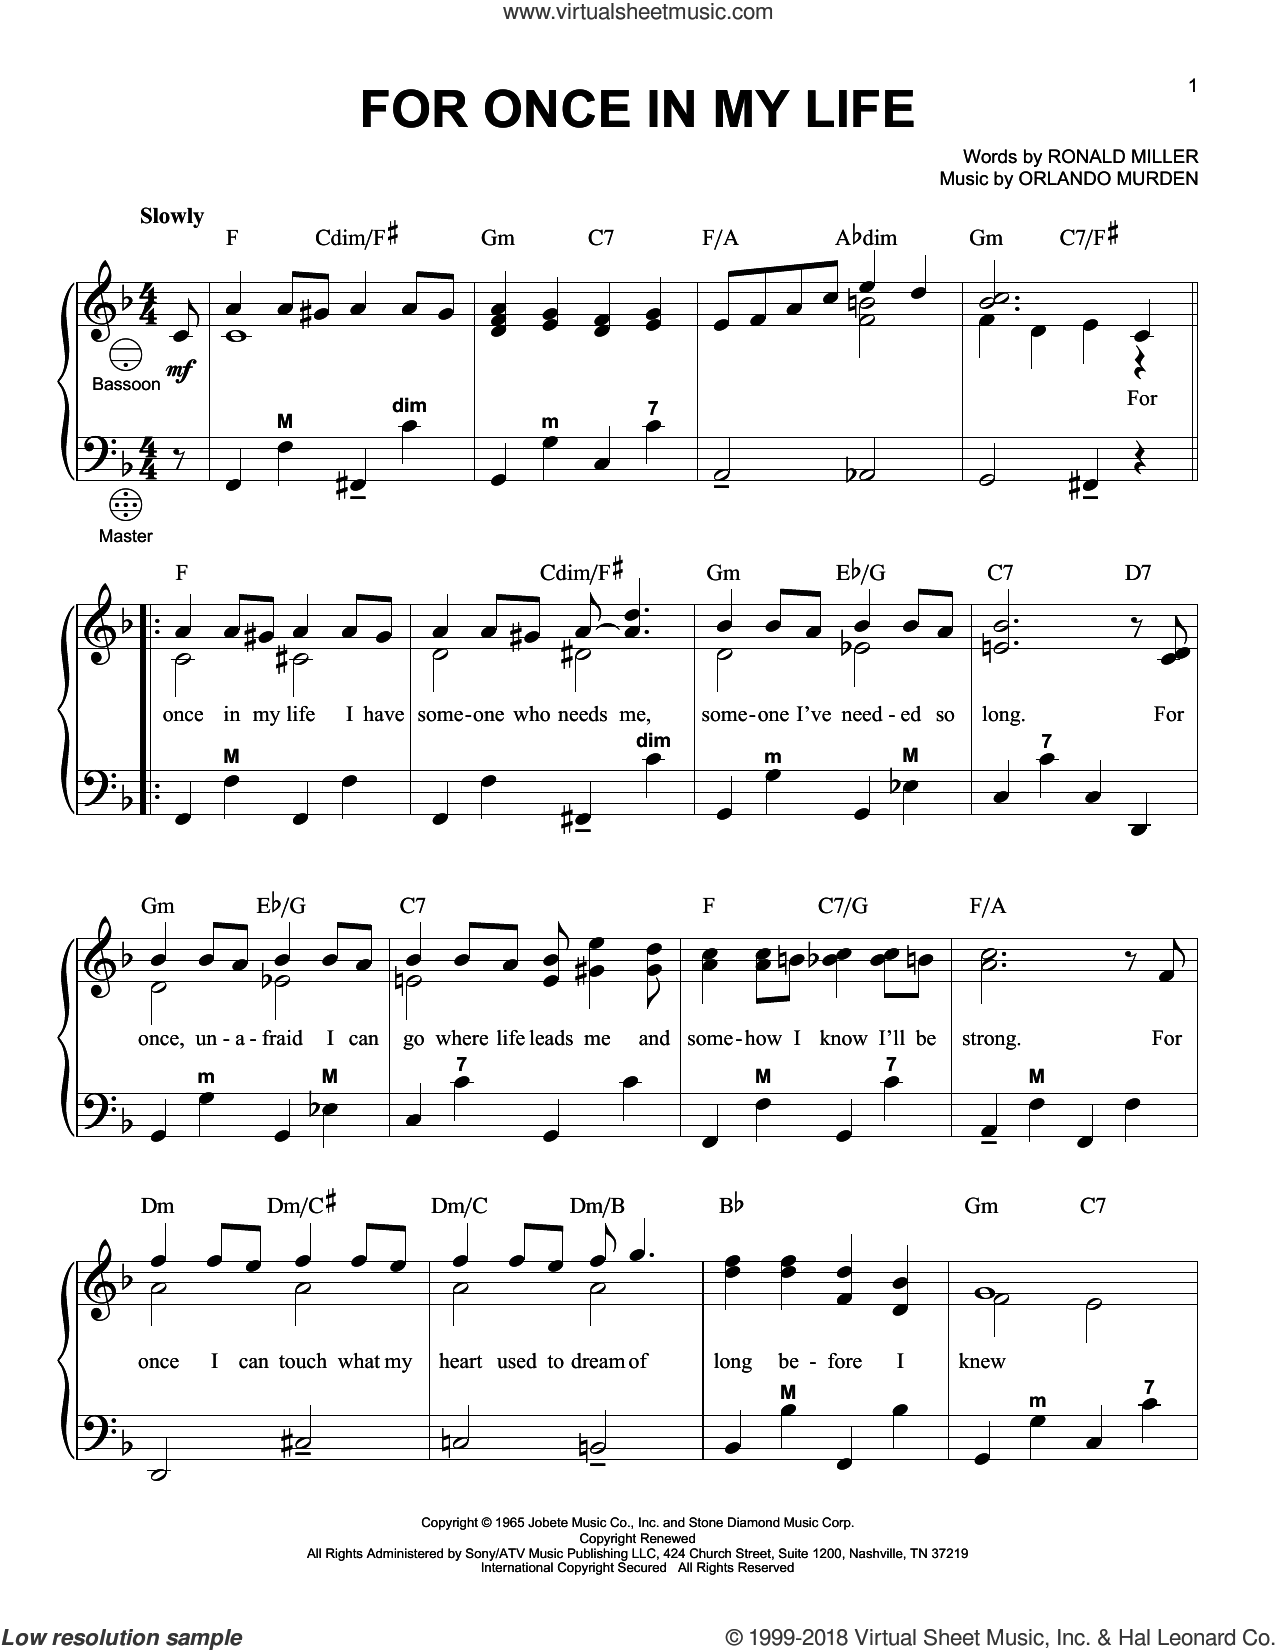 For Once In My Life sheet music for accordion by Stevie Wonder, Orlando Murden and Ron Miller, intermediate skill level